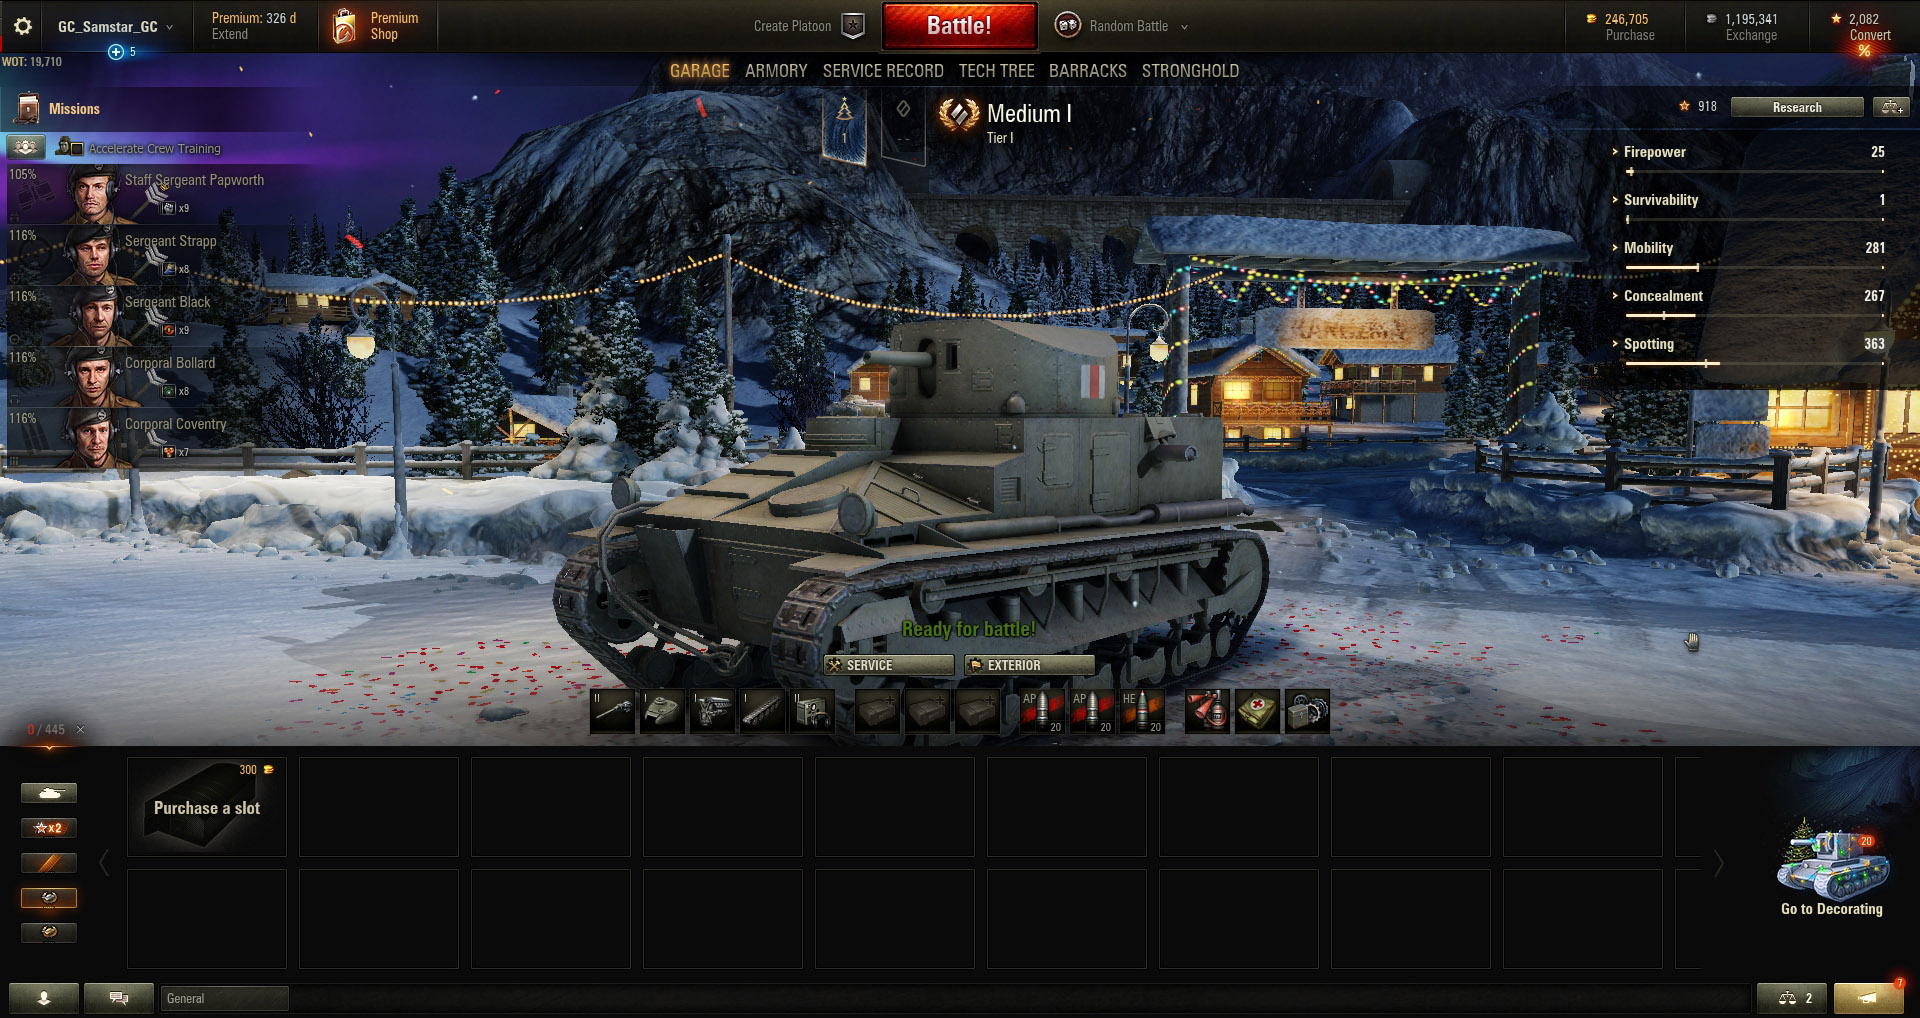 The Vickers Medium Mk 1 is the only Medium tank available in Tier 1.